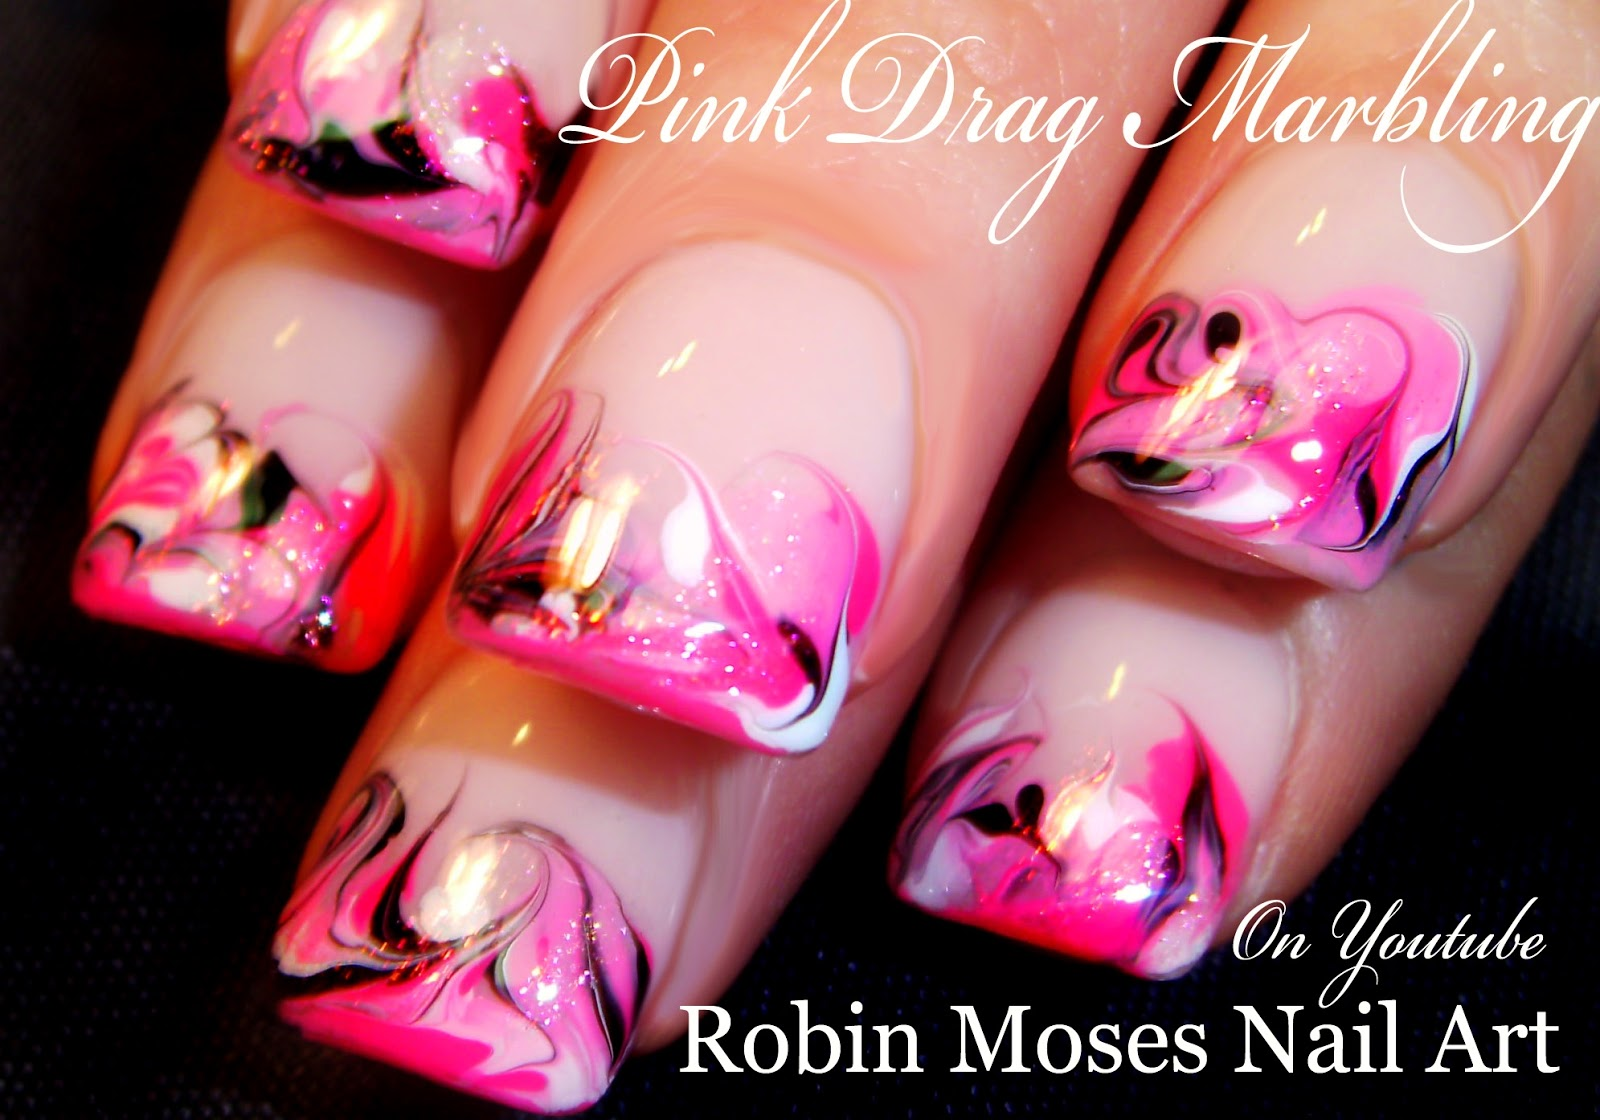 Robin moses nail art no water marble nail art design tutorial no water needed marble nail art design tutorial prinsesfo Gallery